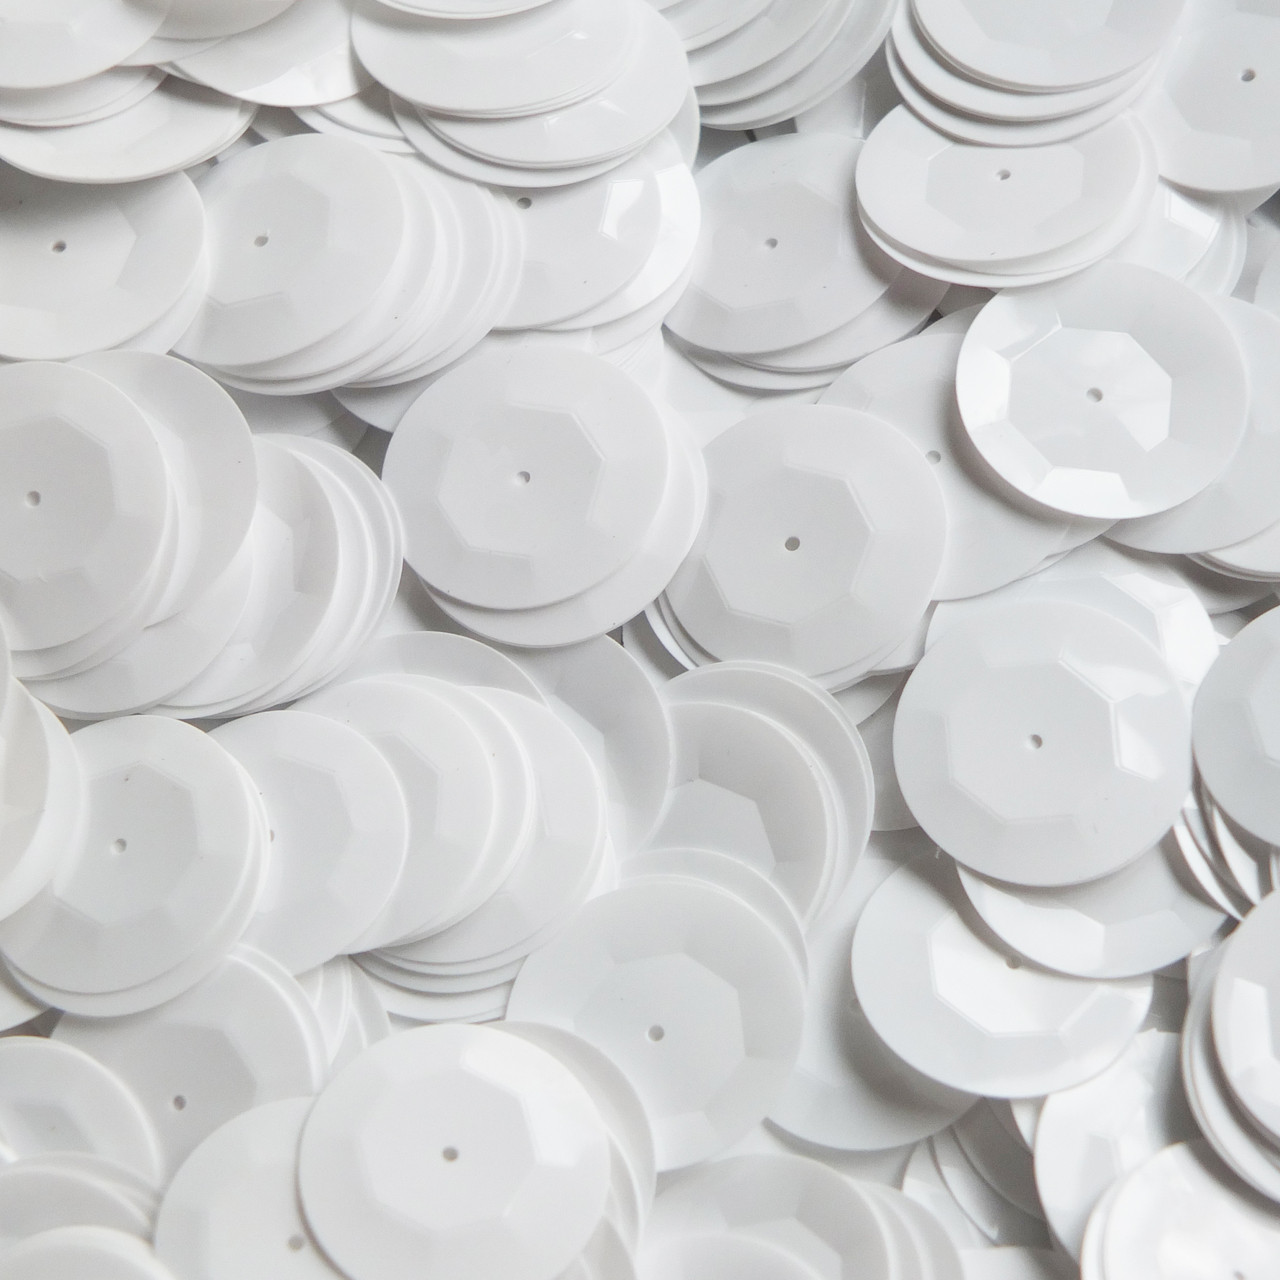 20mm Cup Sequins White Opaque Shiny